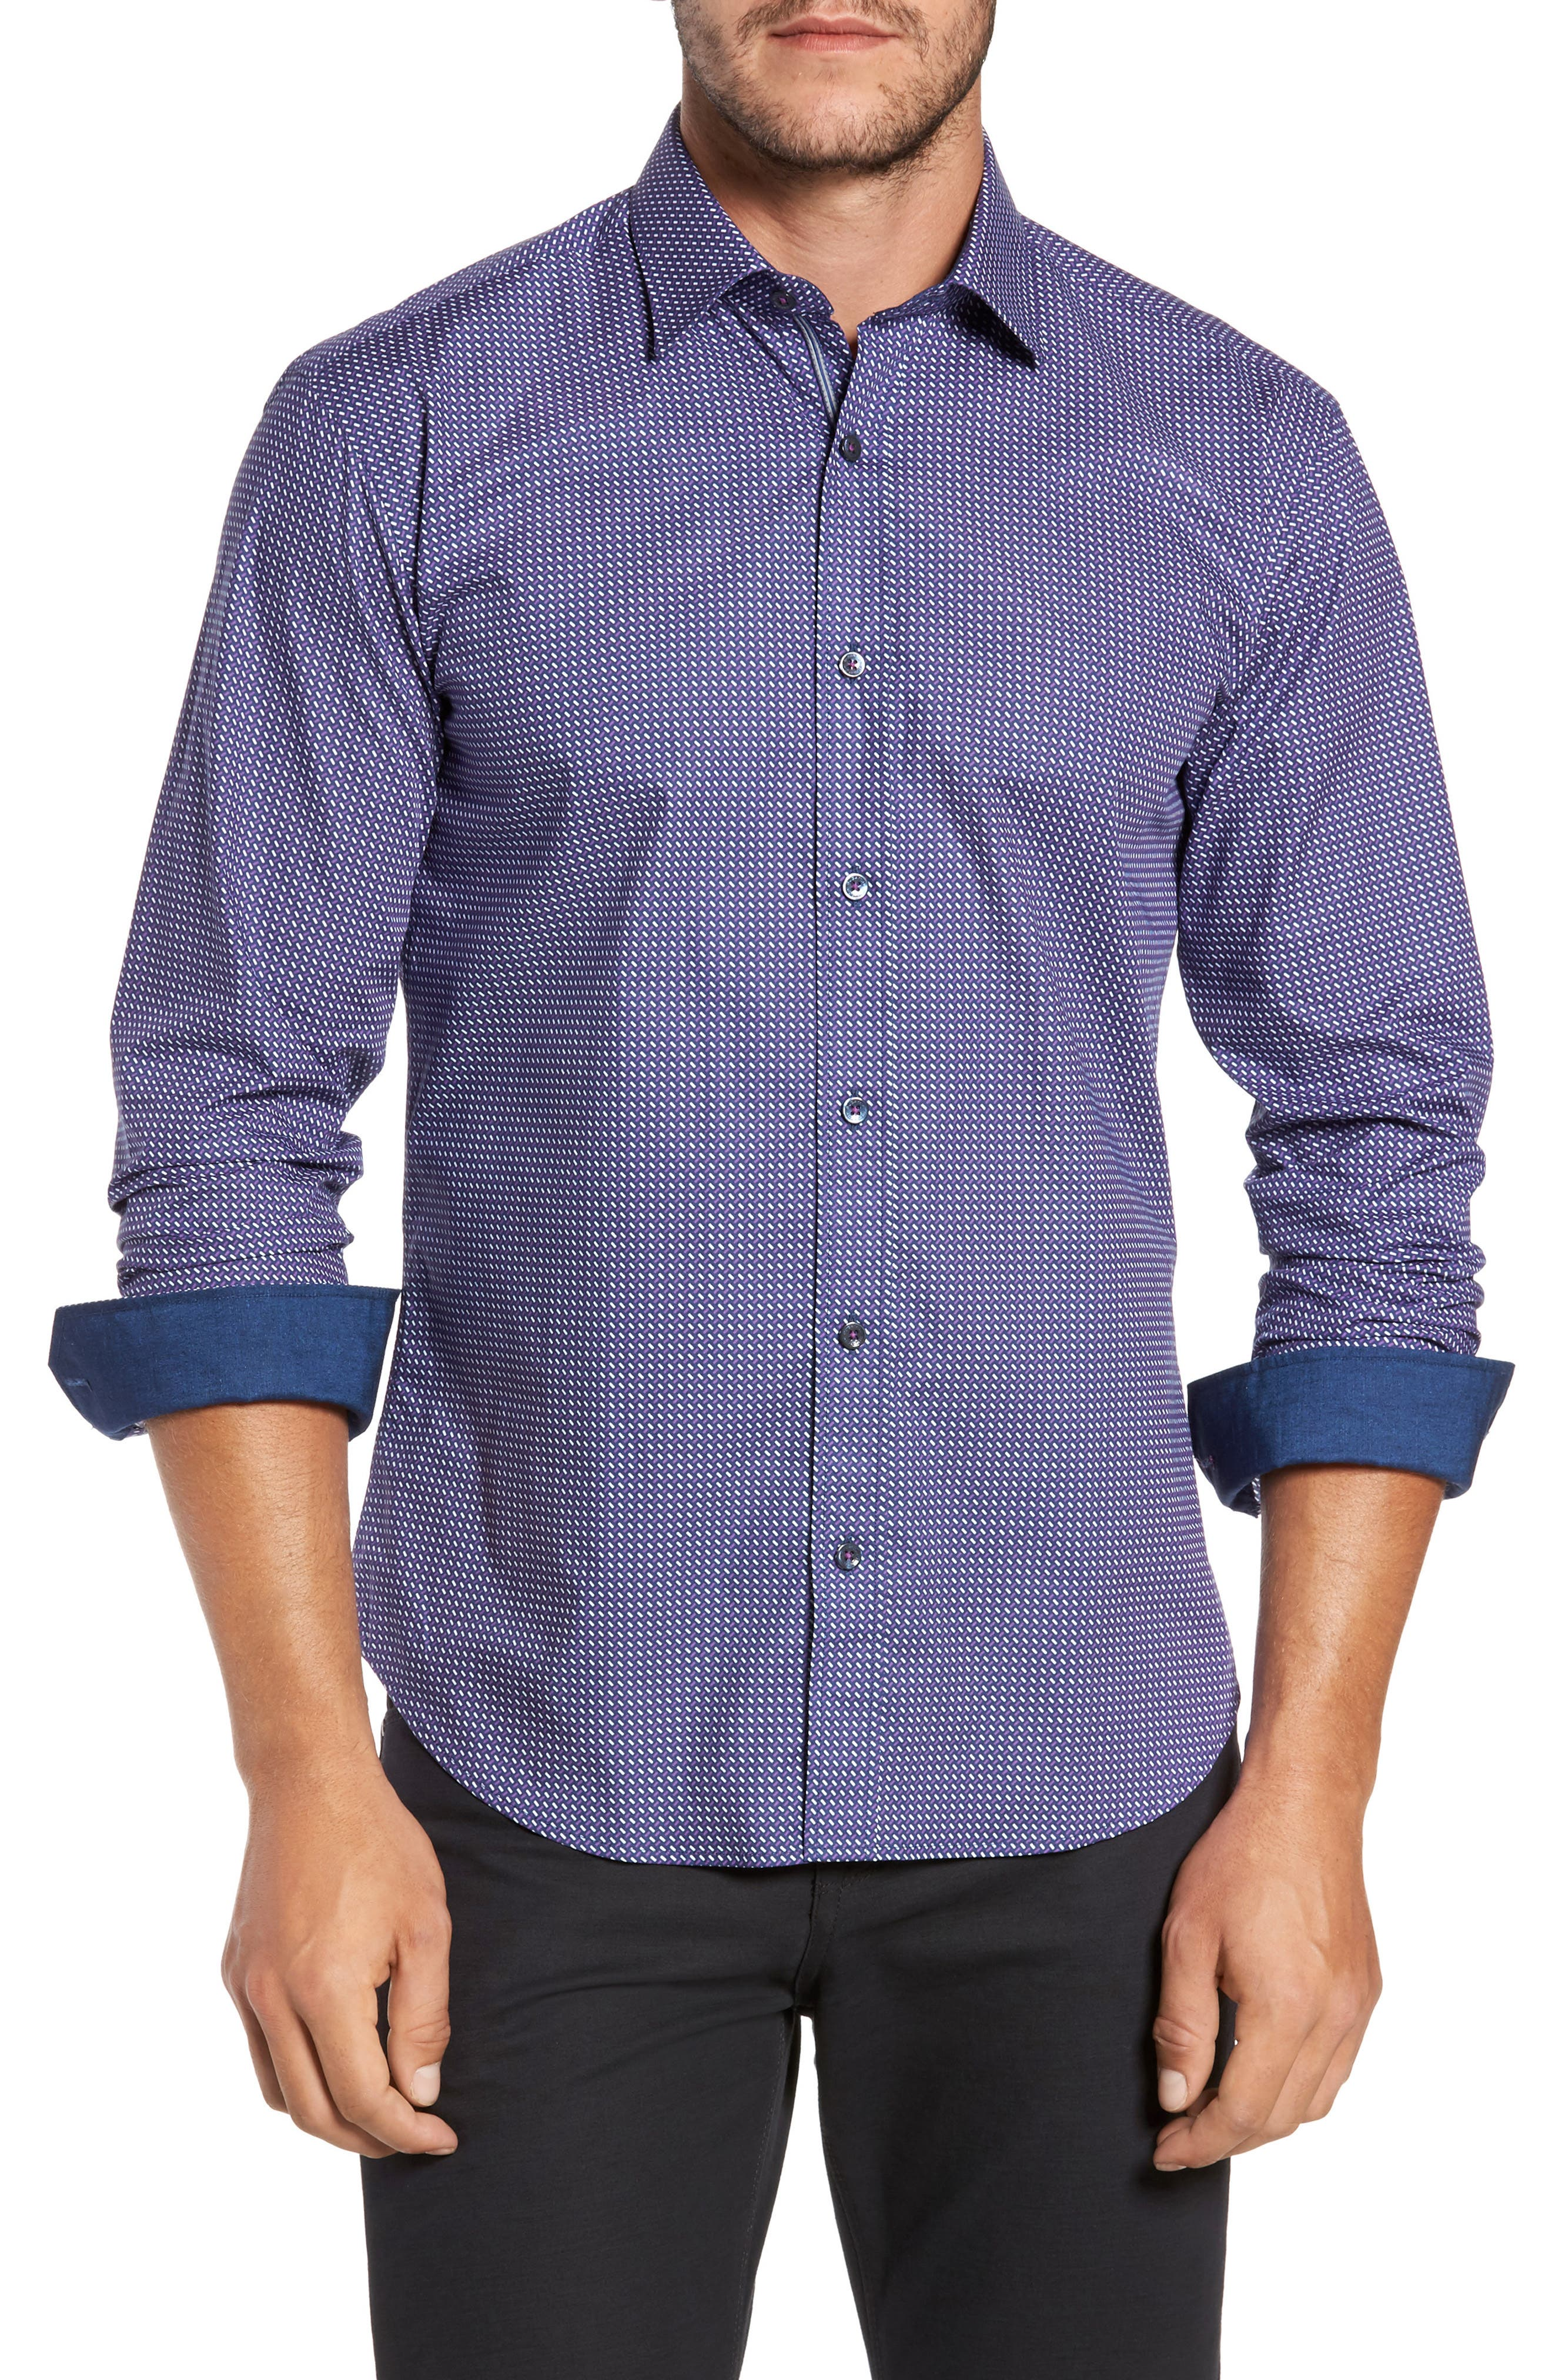 Main Image - Bugatchi Trim Fit Weave Print Sport Shirt